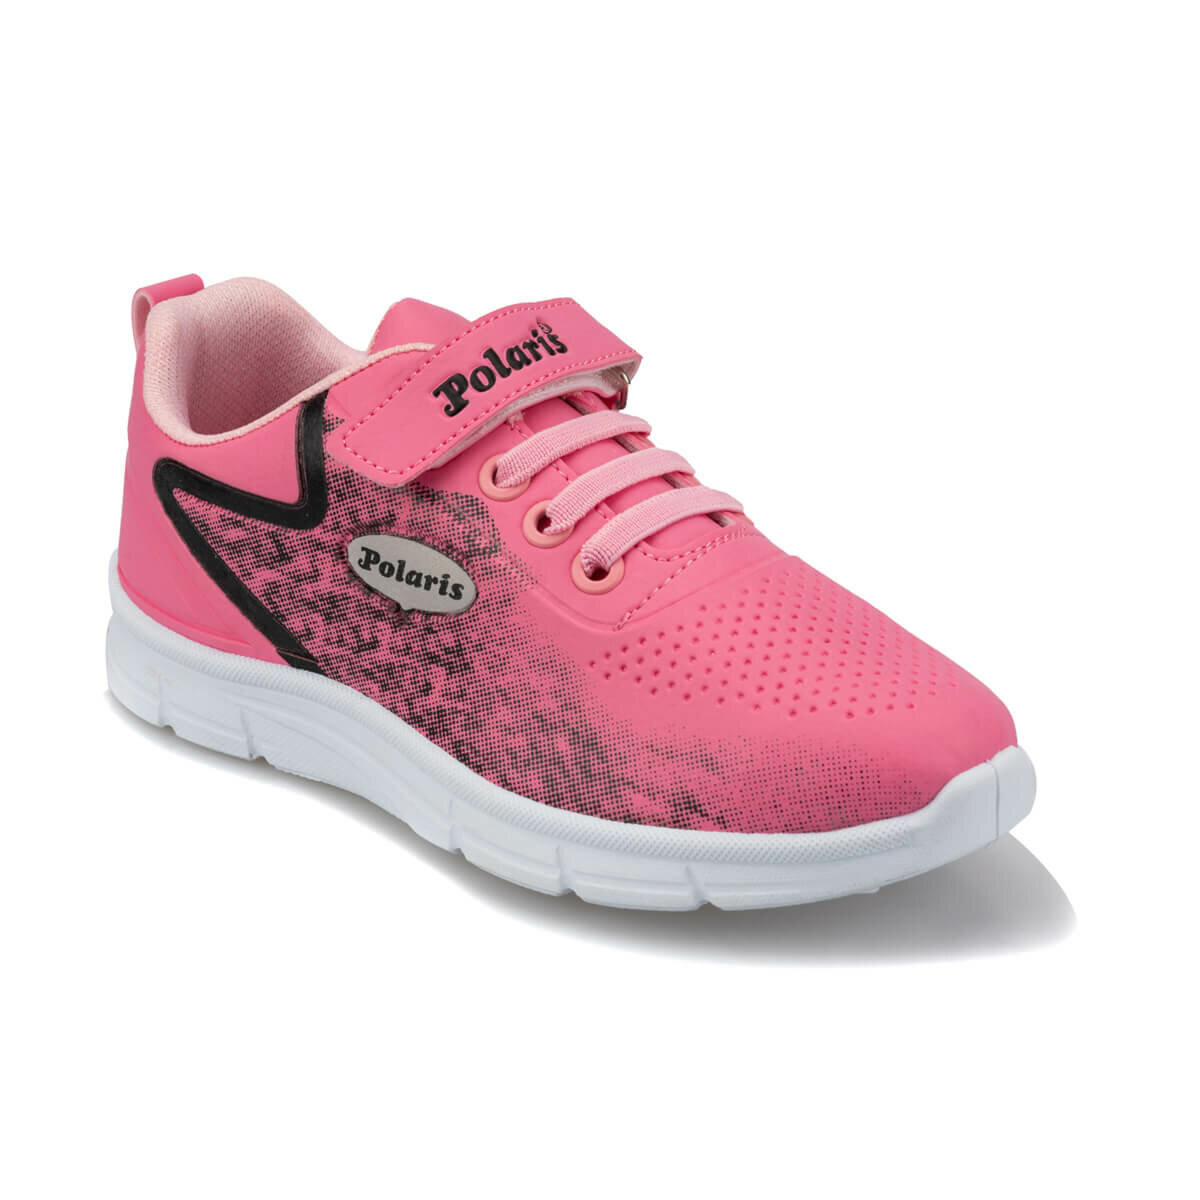 FLO 92.511910.F Pink Female Child Sports Shoes Polaris